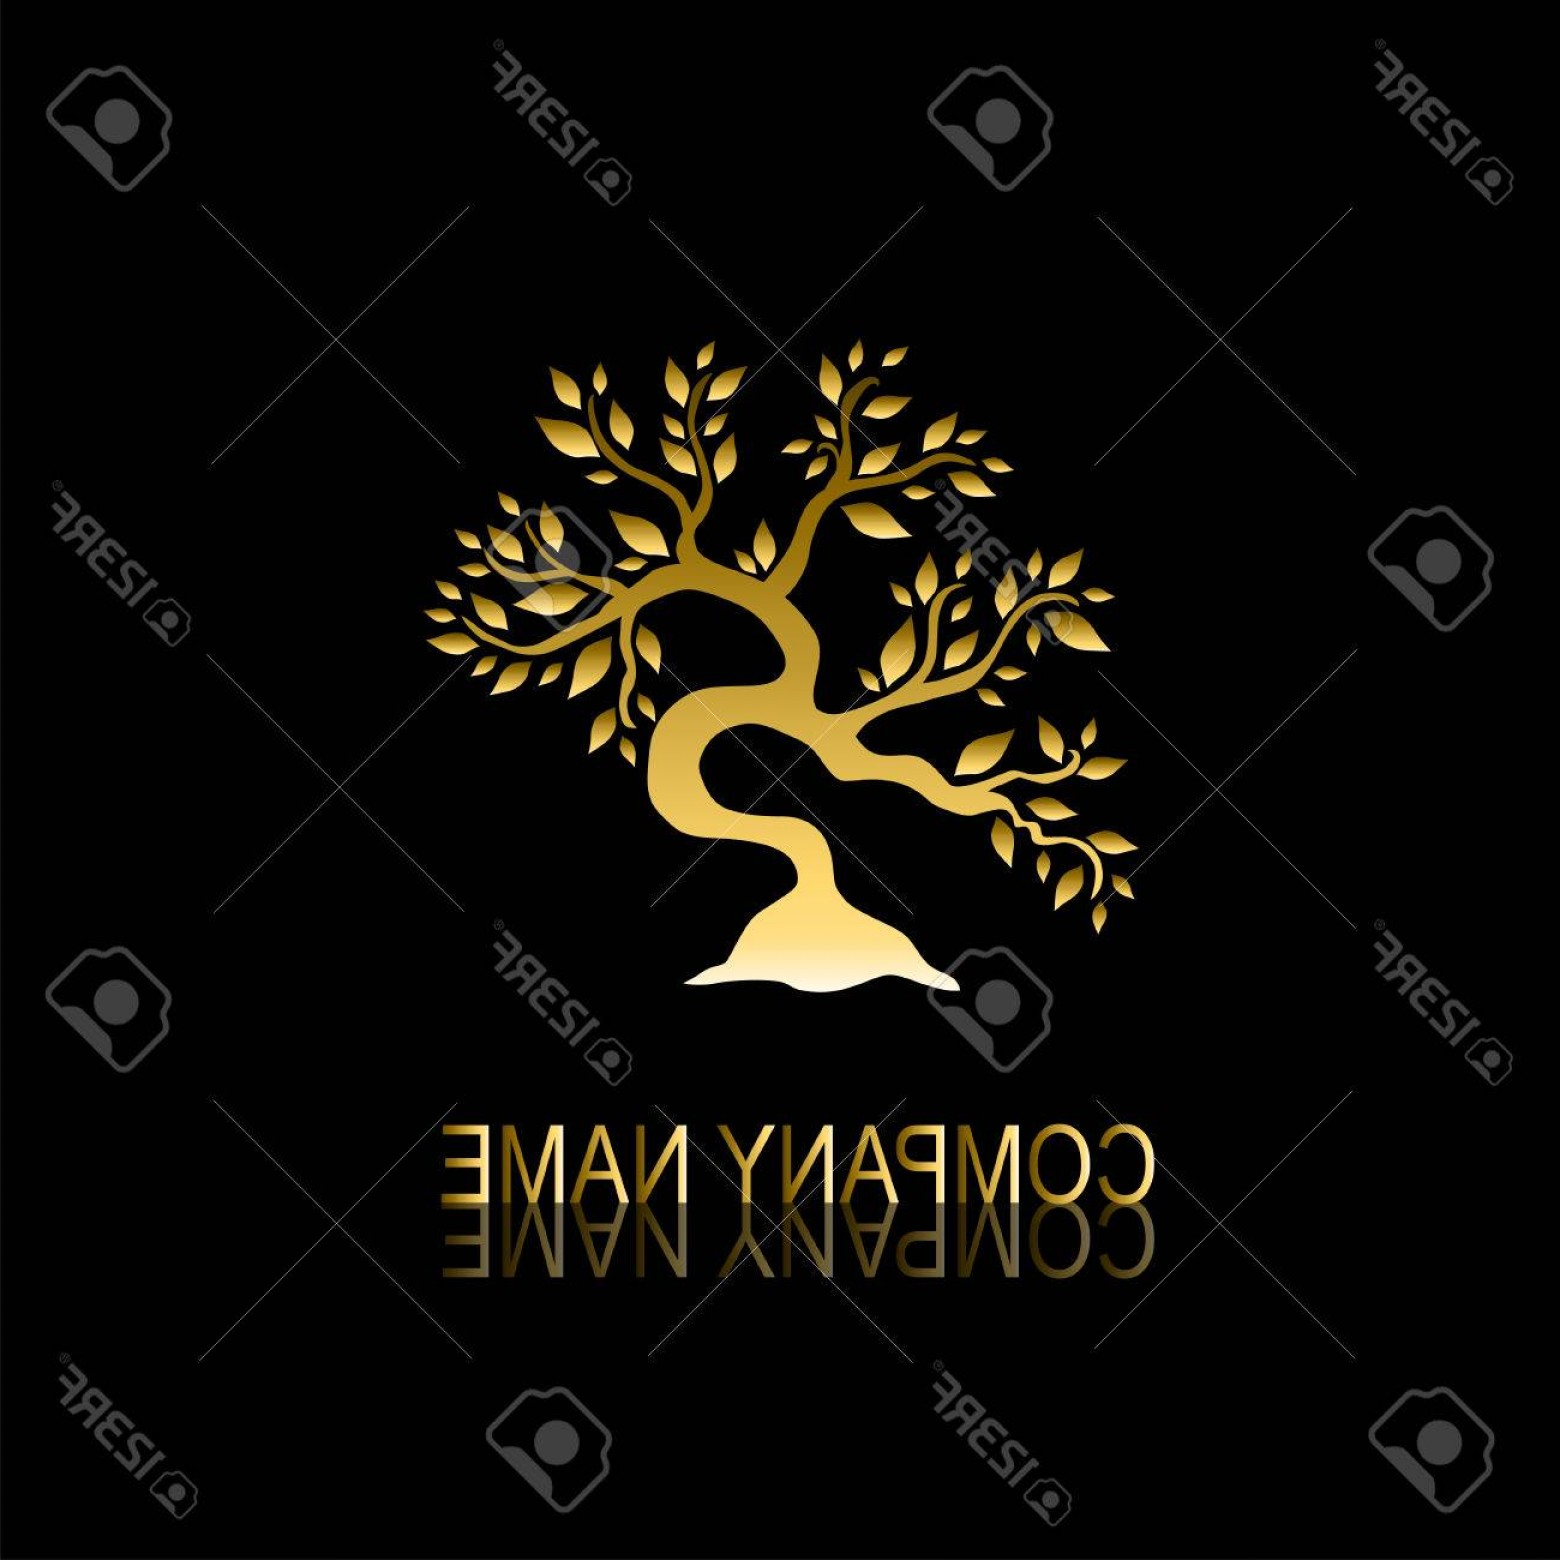 Jewelry Manufacturing Icon Vector: Photostock Vector Abstract Golden Tree Sign Symbol Design Element Can Be Used For Corporate Identity Company Emblem Je